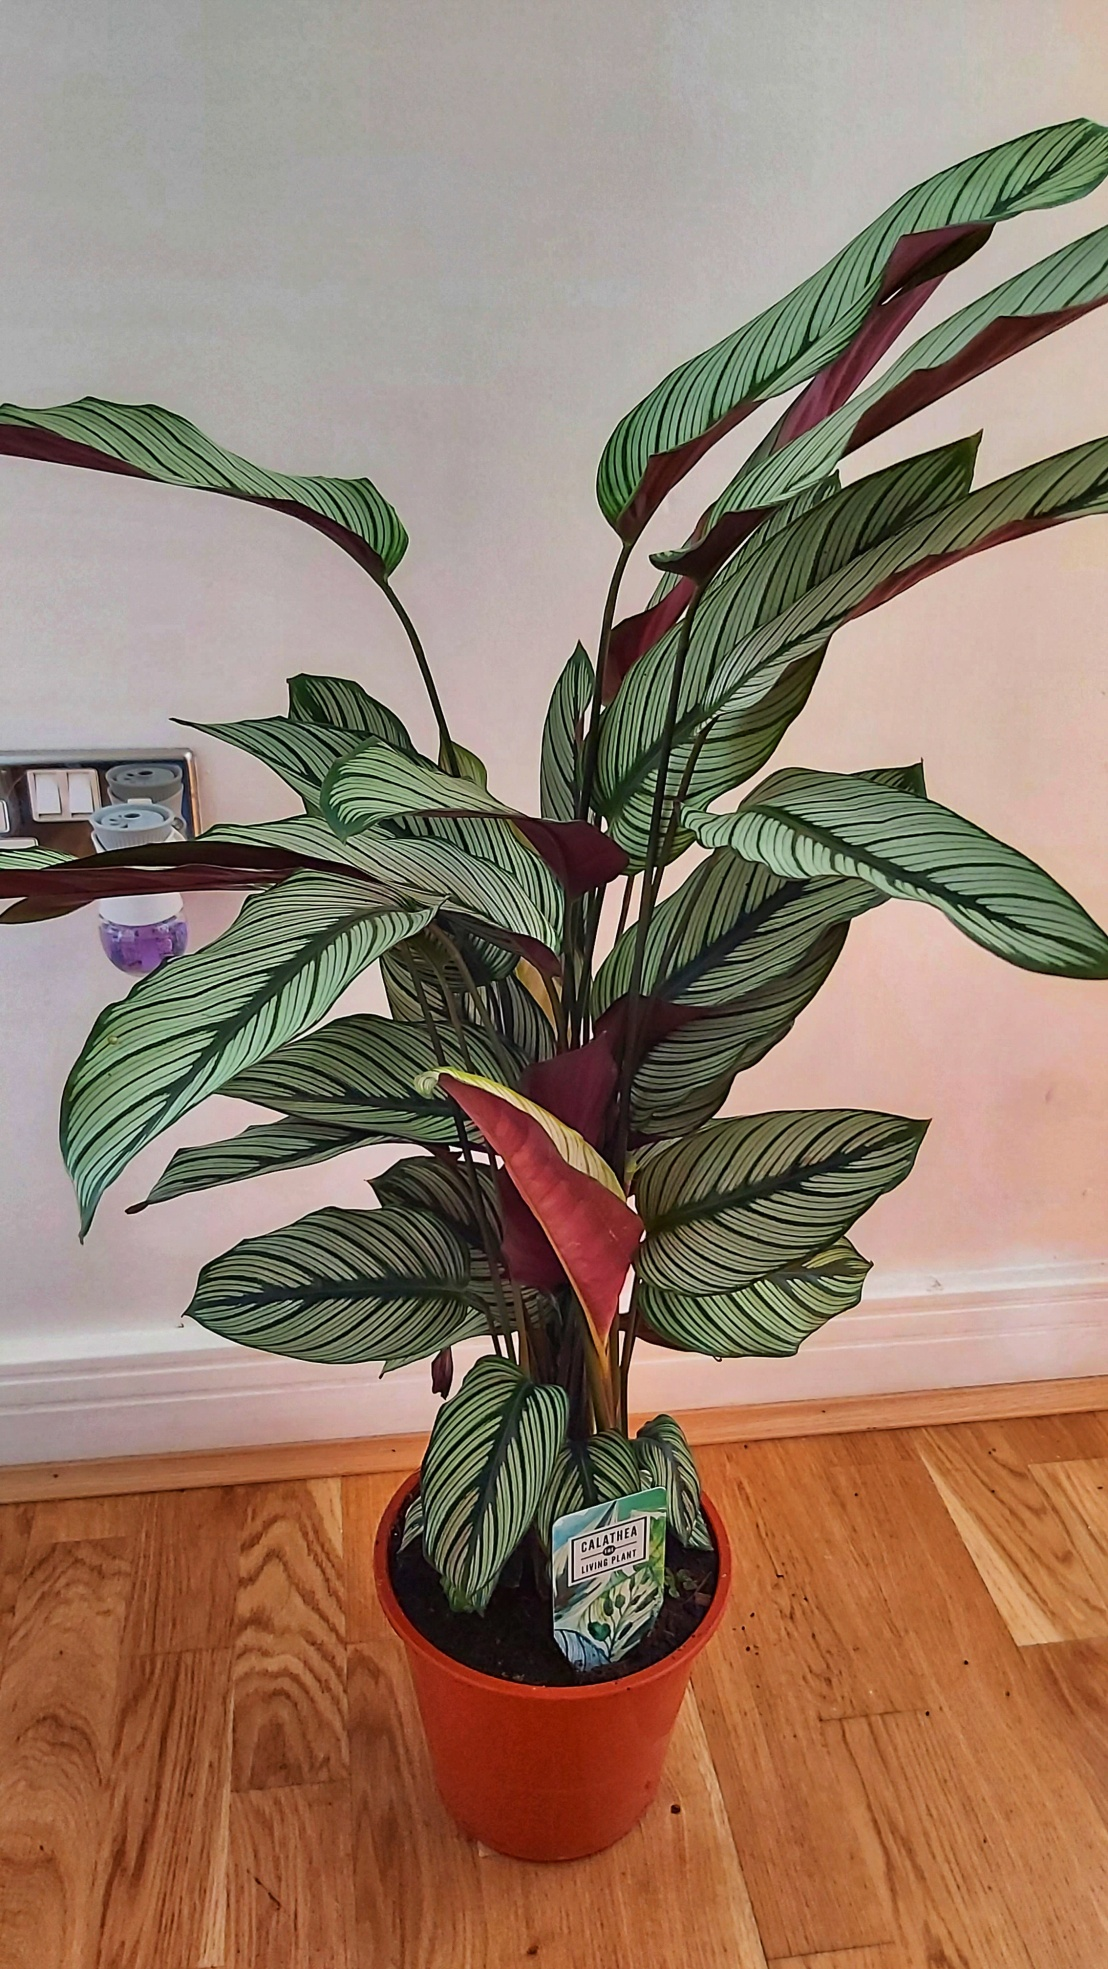 Calathea plant on the floor, bought at Columbia Road